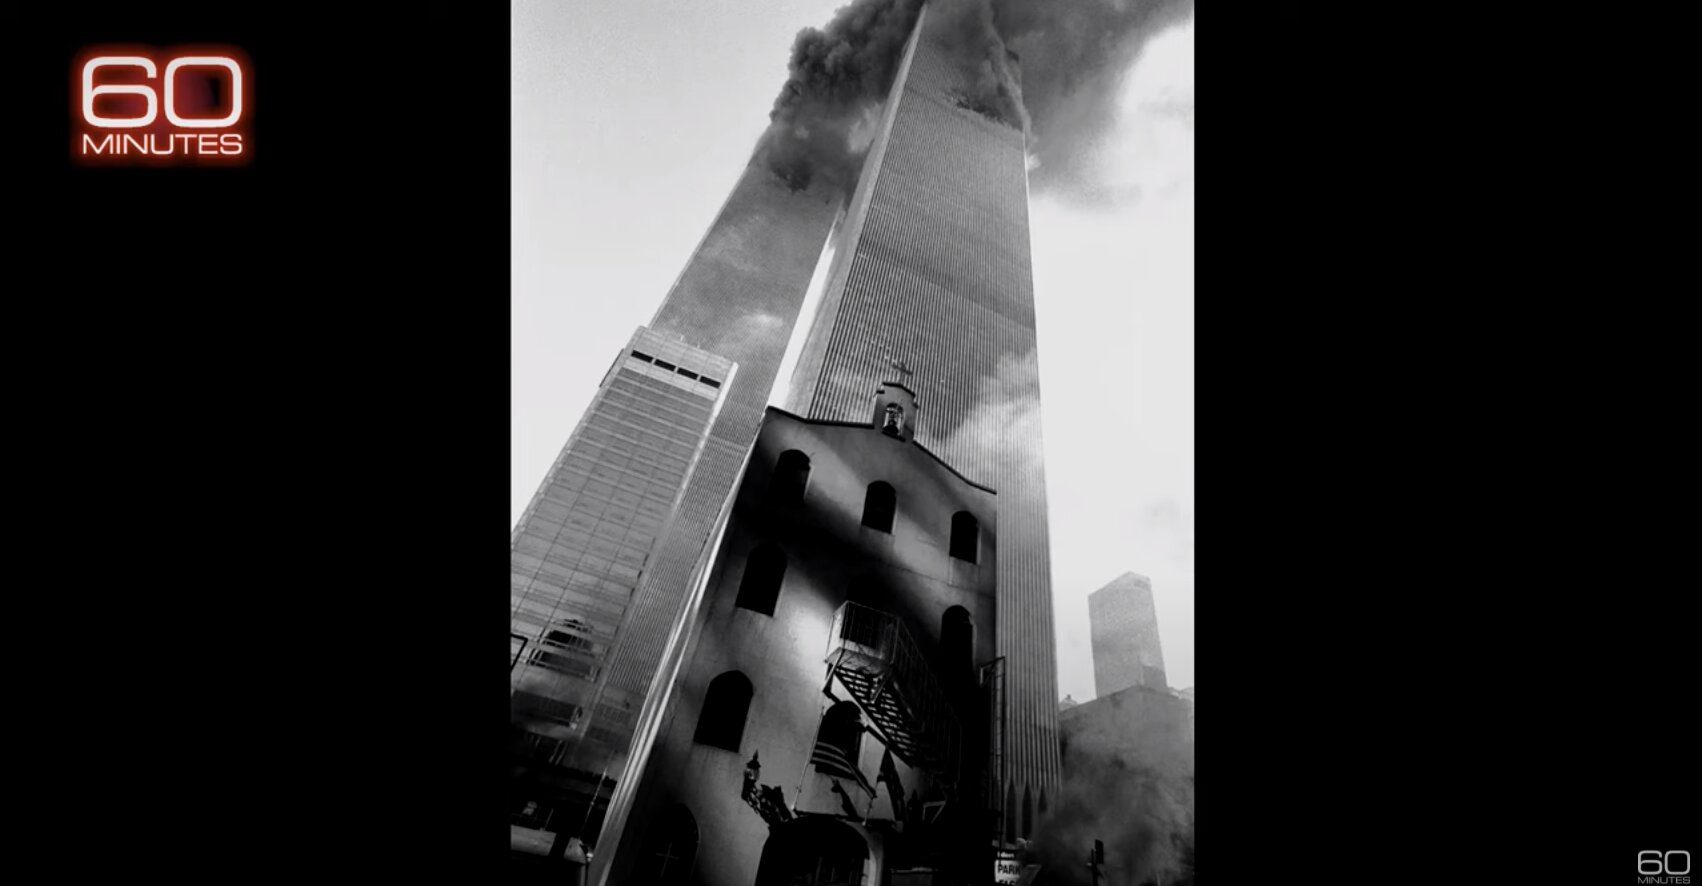 Nearly 20 years after being destroyed on 9/11, a New York City church is being resurrected